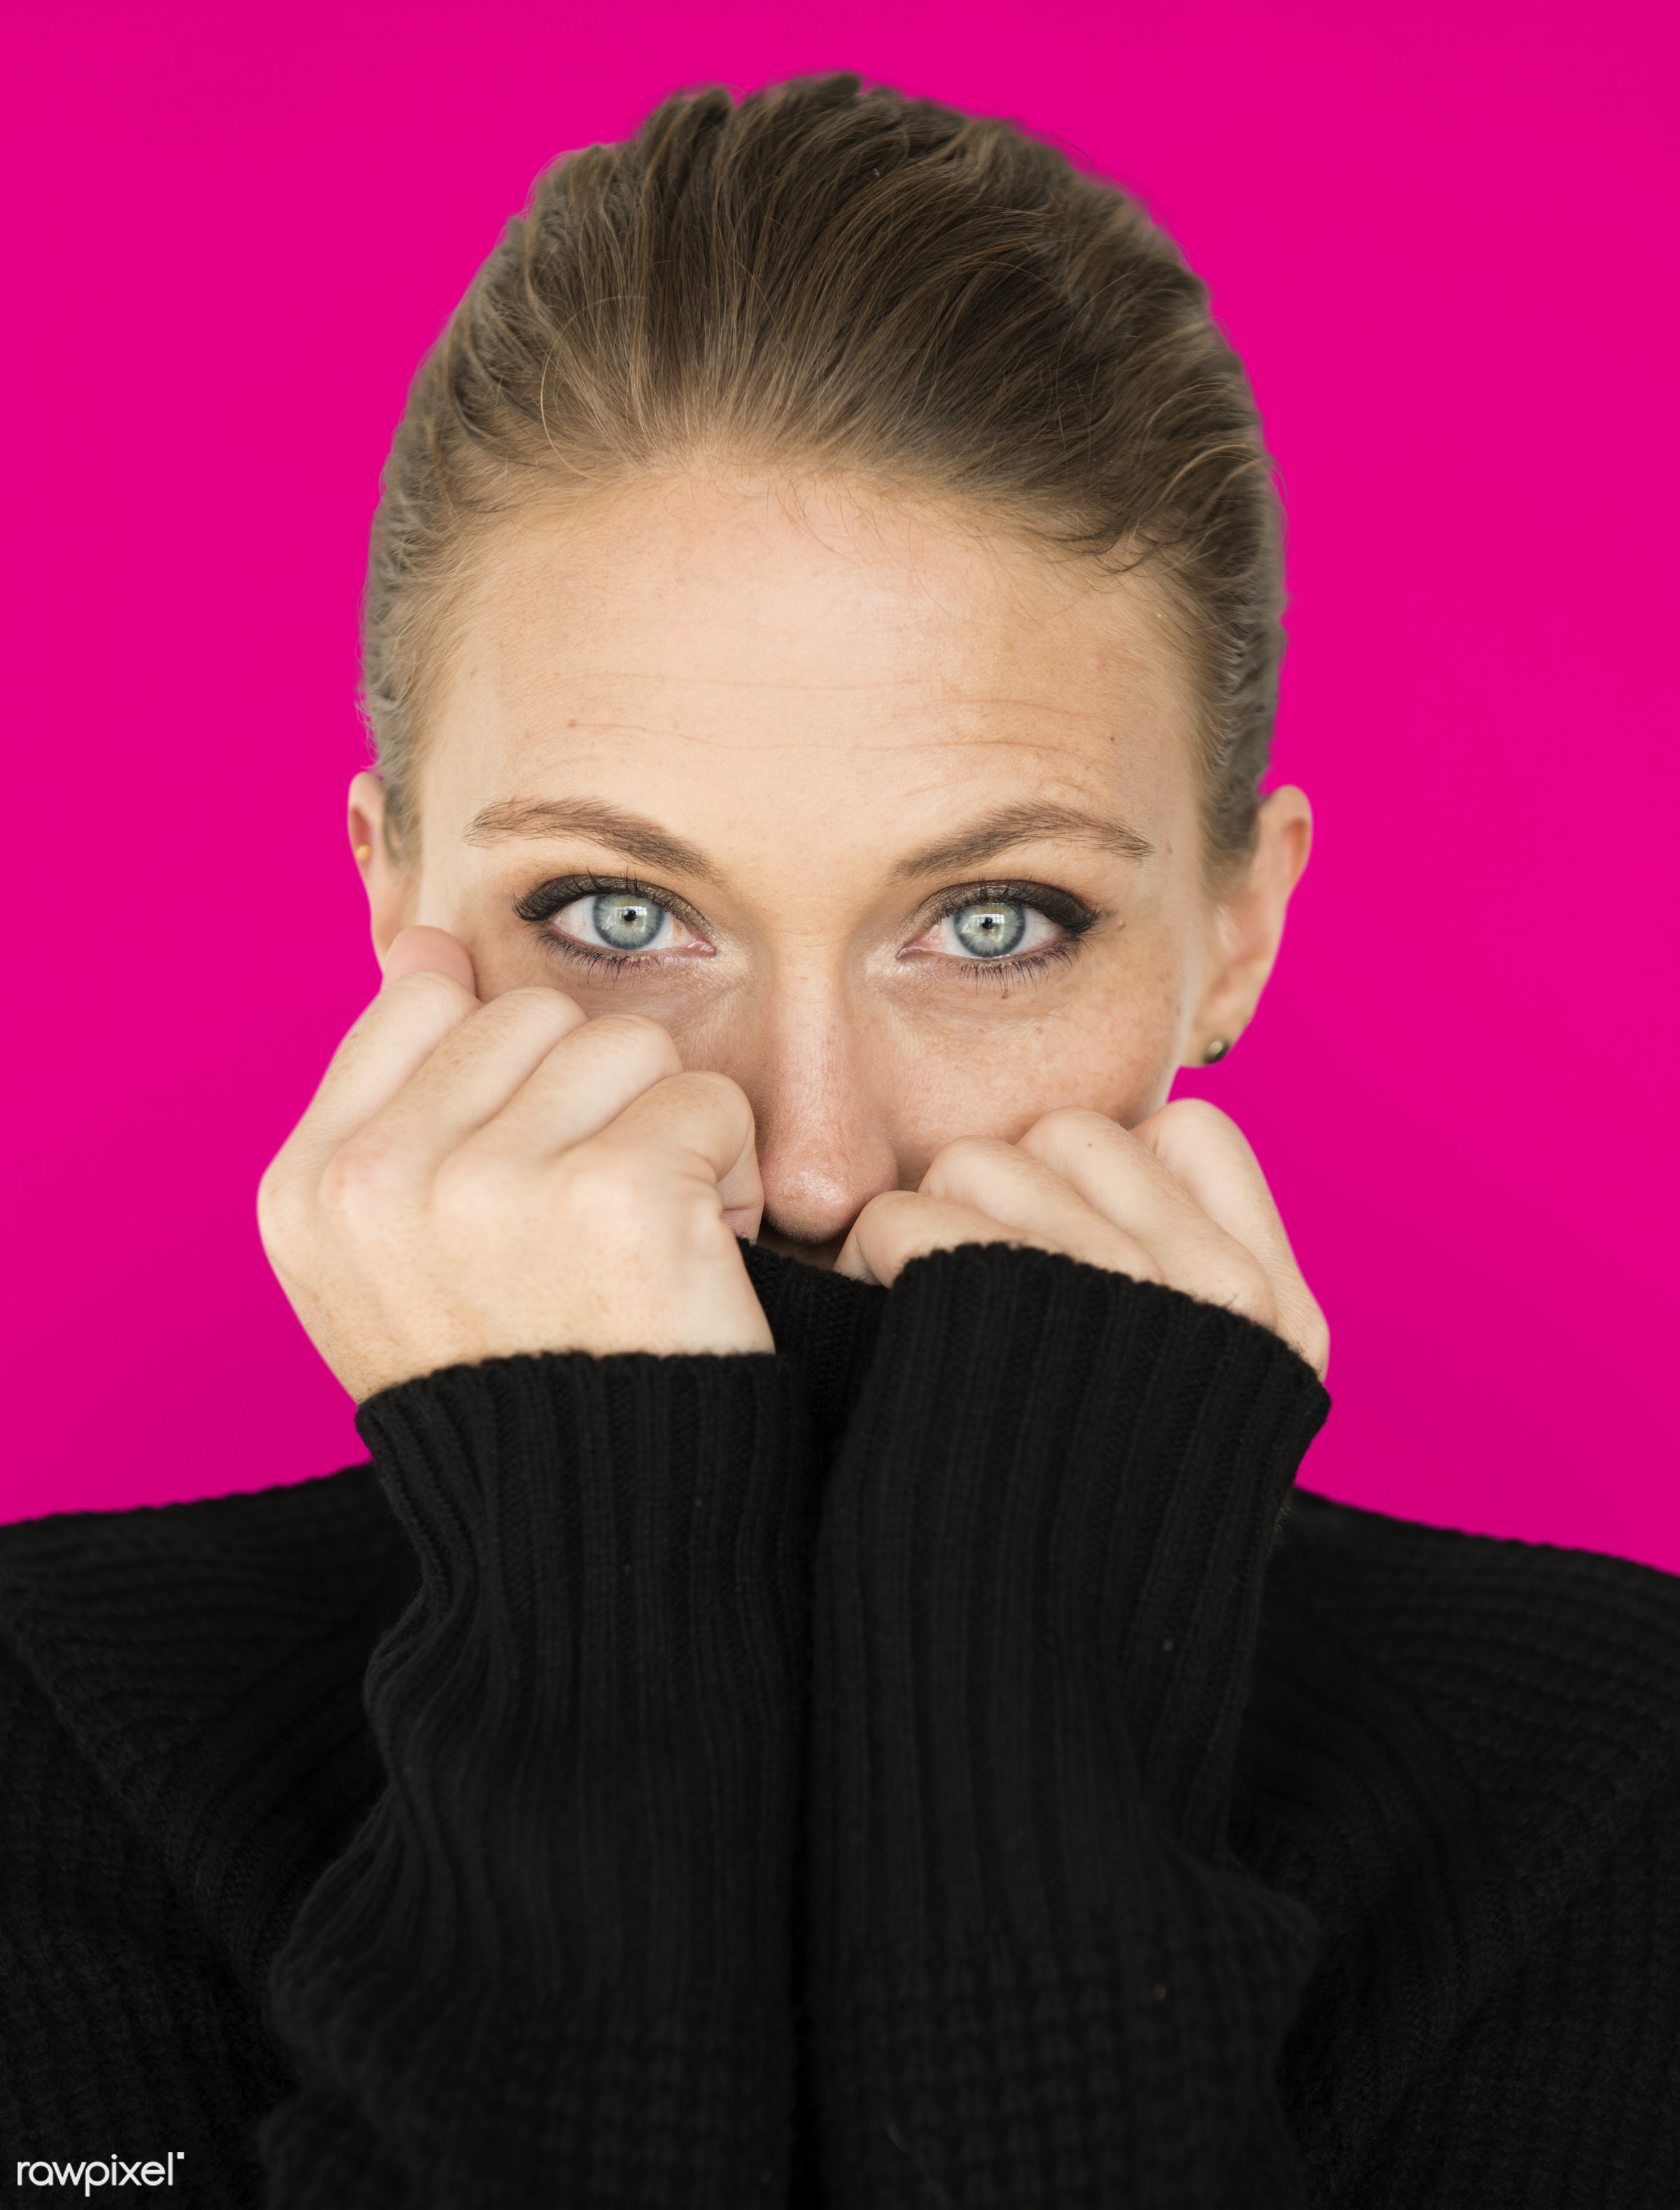 adult, background, beauty, cardigan, casual, charming, cold, cute, emotion, emotional, expression, face, female, girl,...